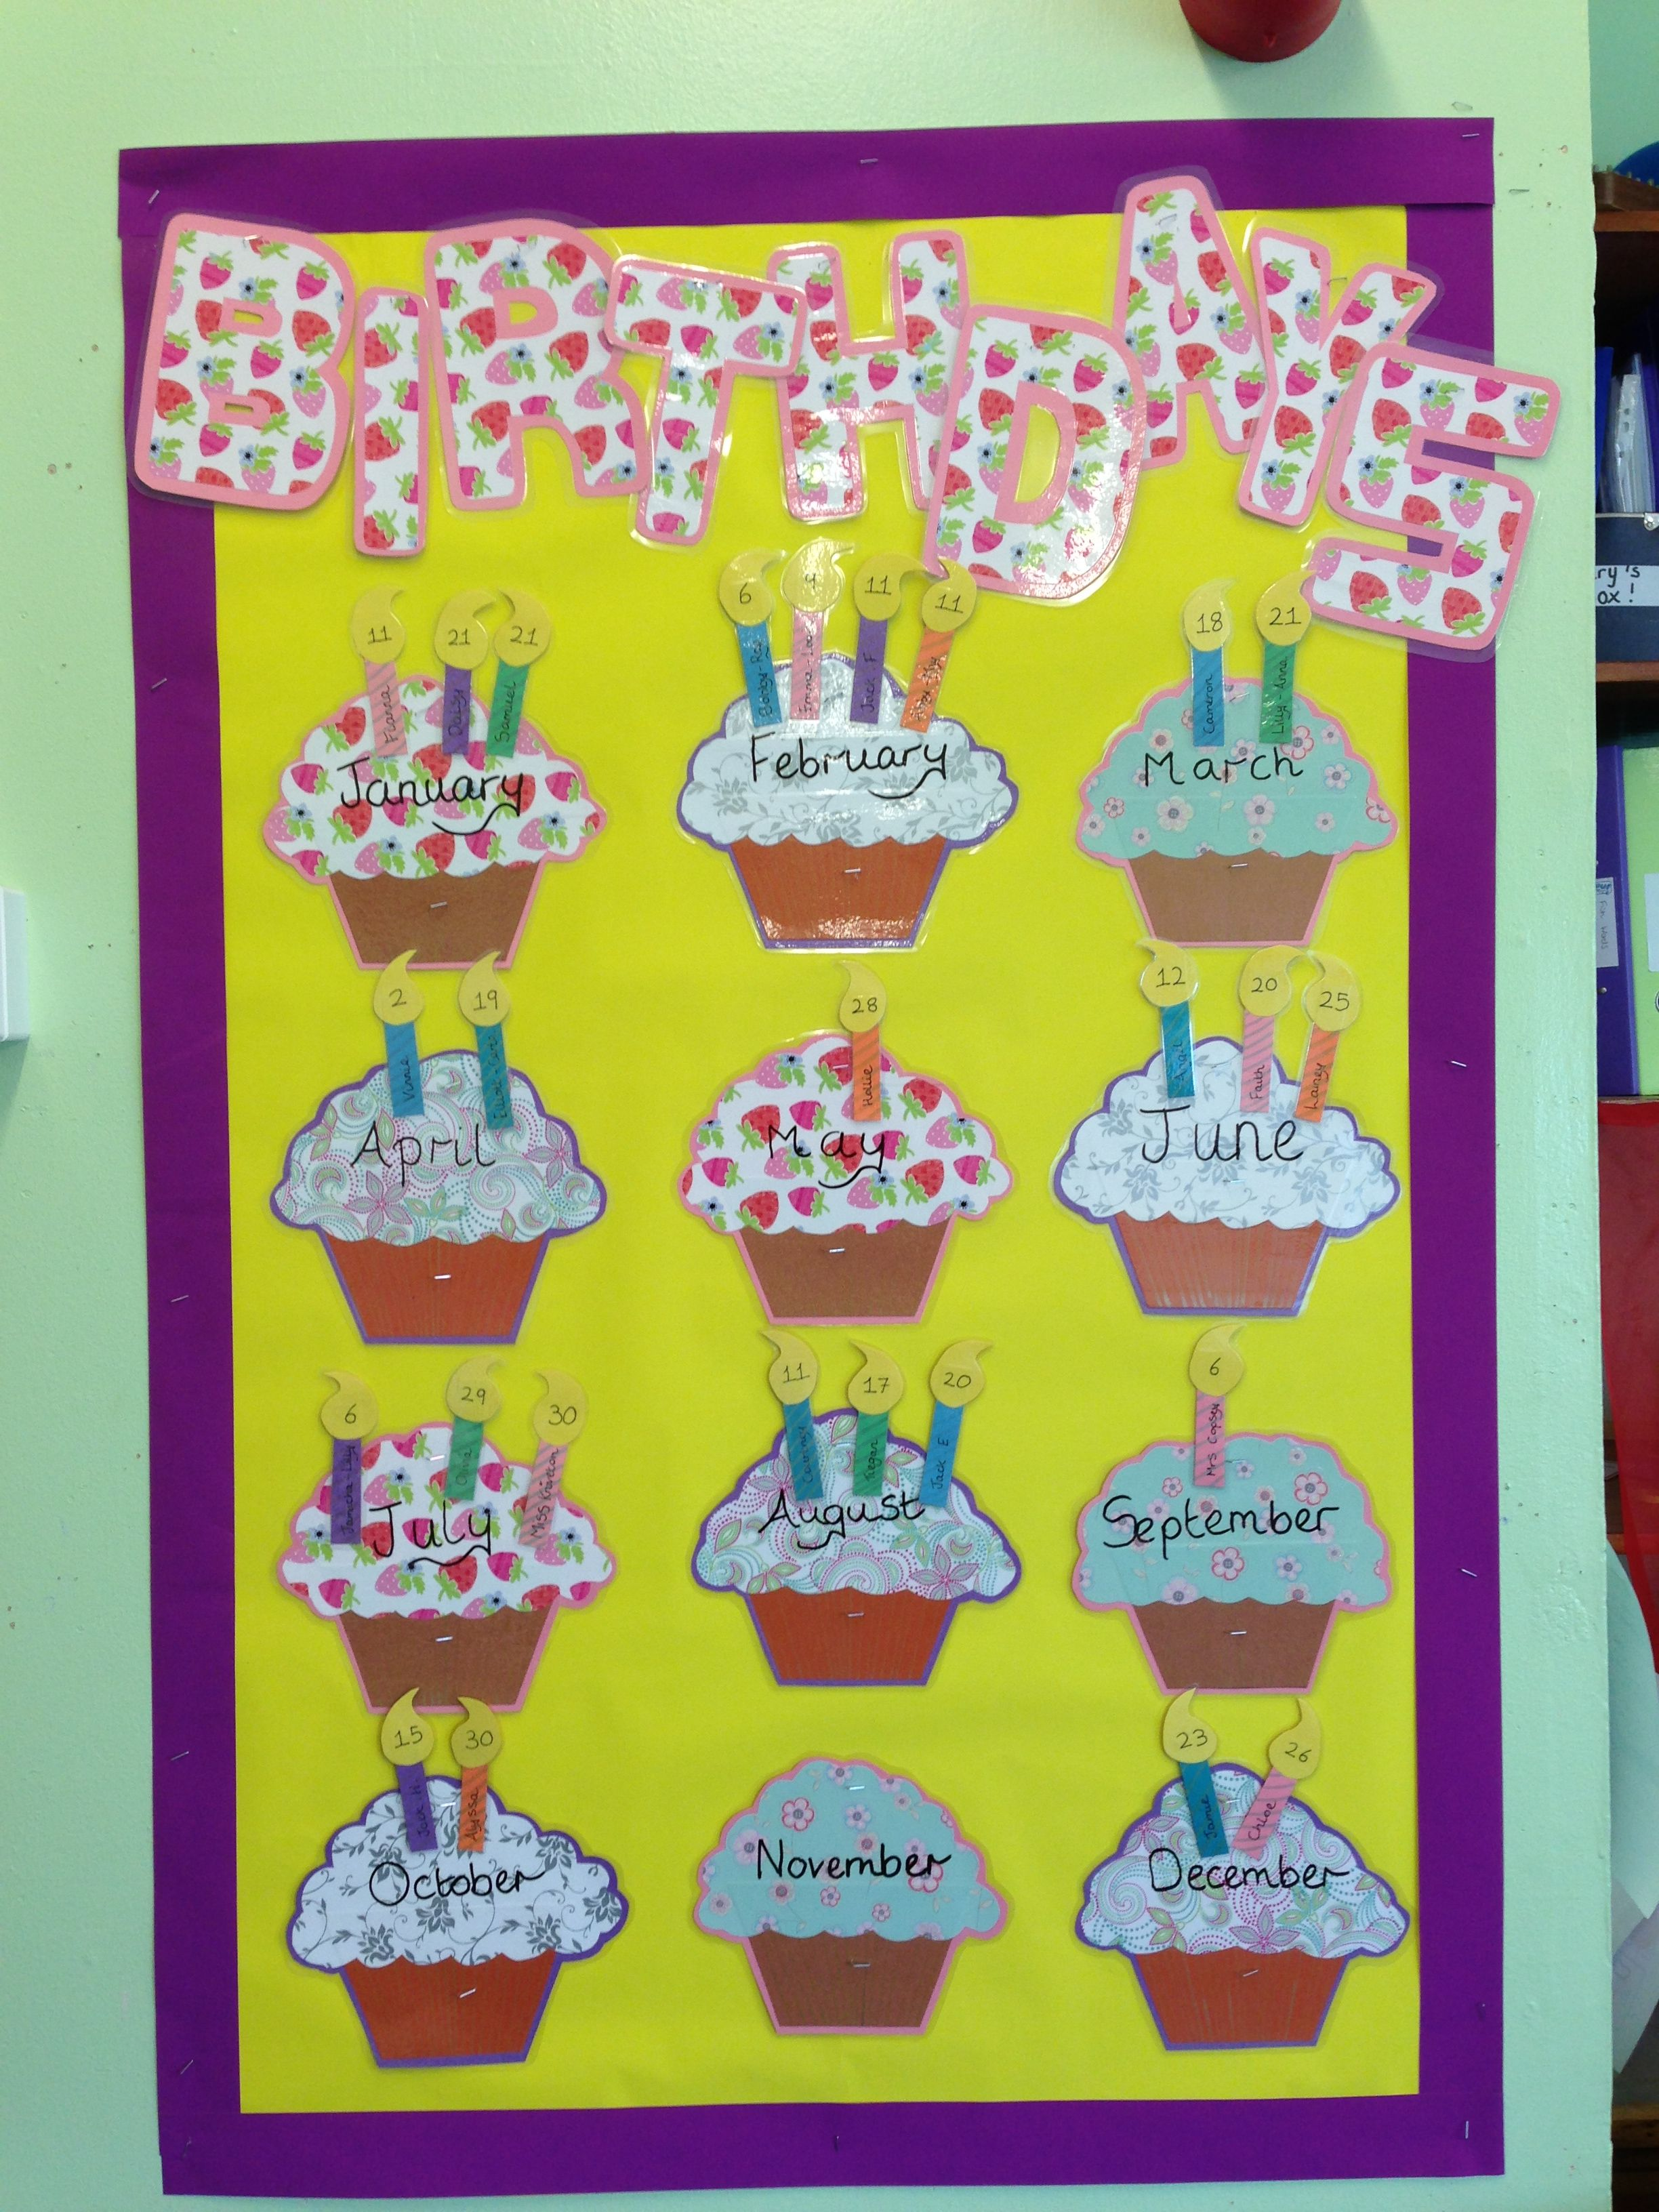 Birthday display using cupcake months and candles with the children's name on and day of the month in the flame